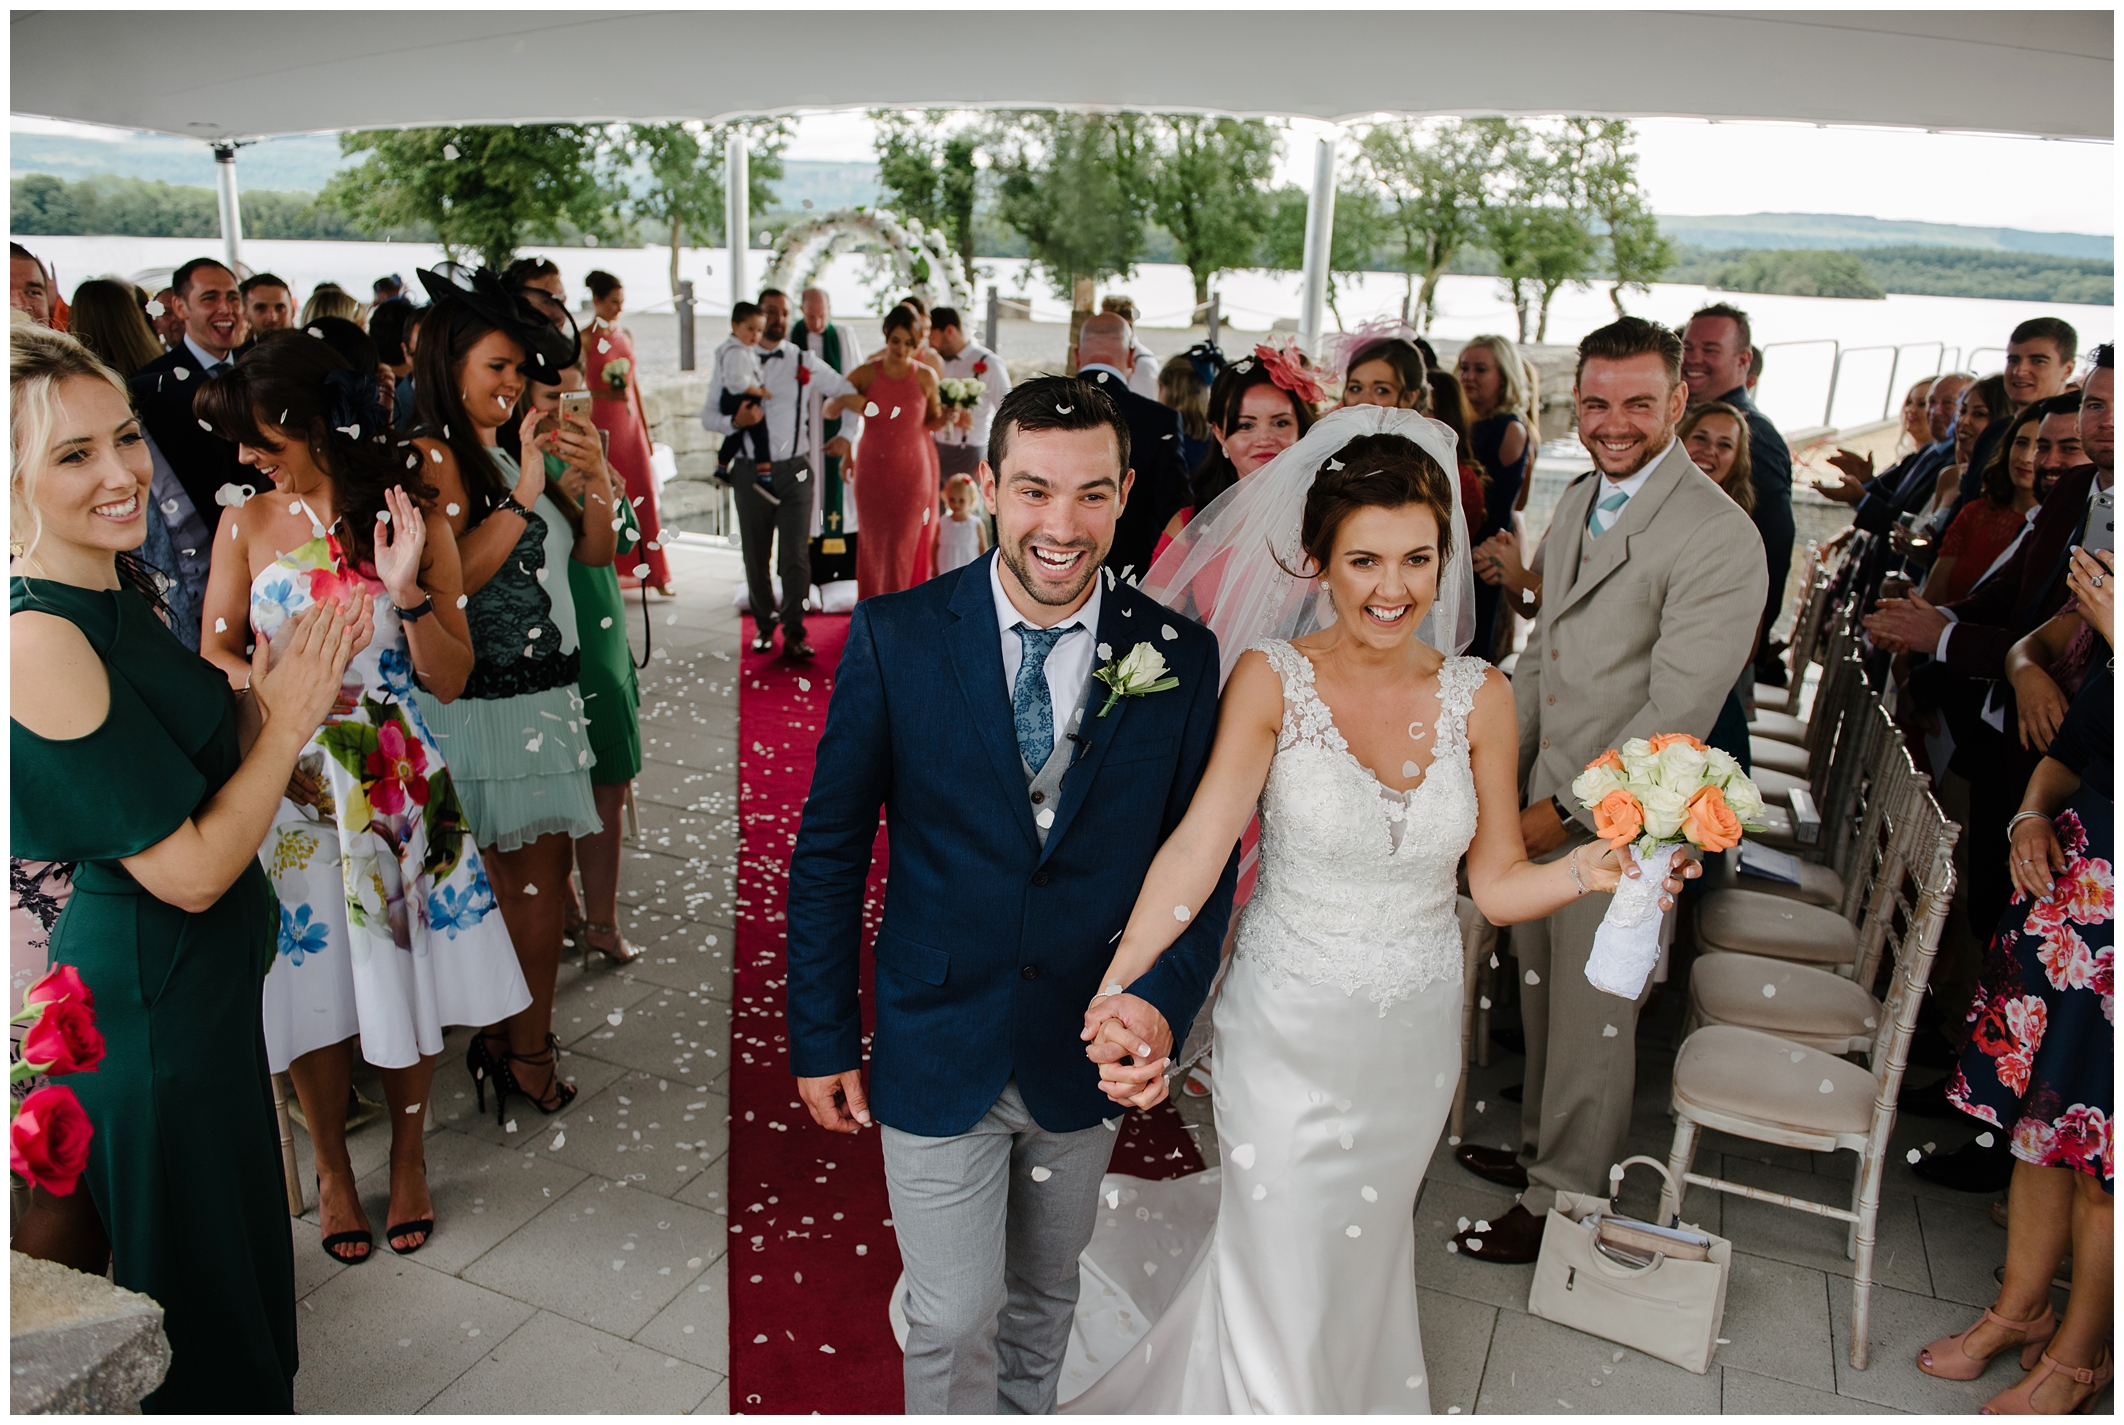 Lynsey_Andy_Rossharbour_Fermanagh_wedding_jude_browne_photography_0076.jpg